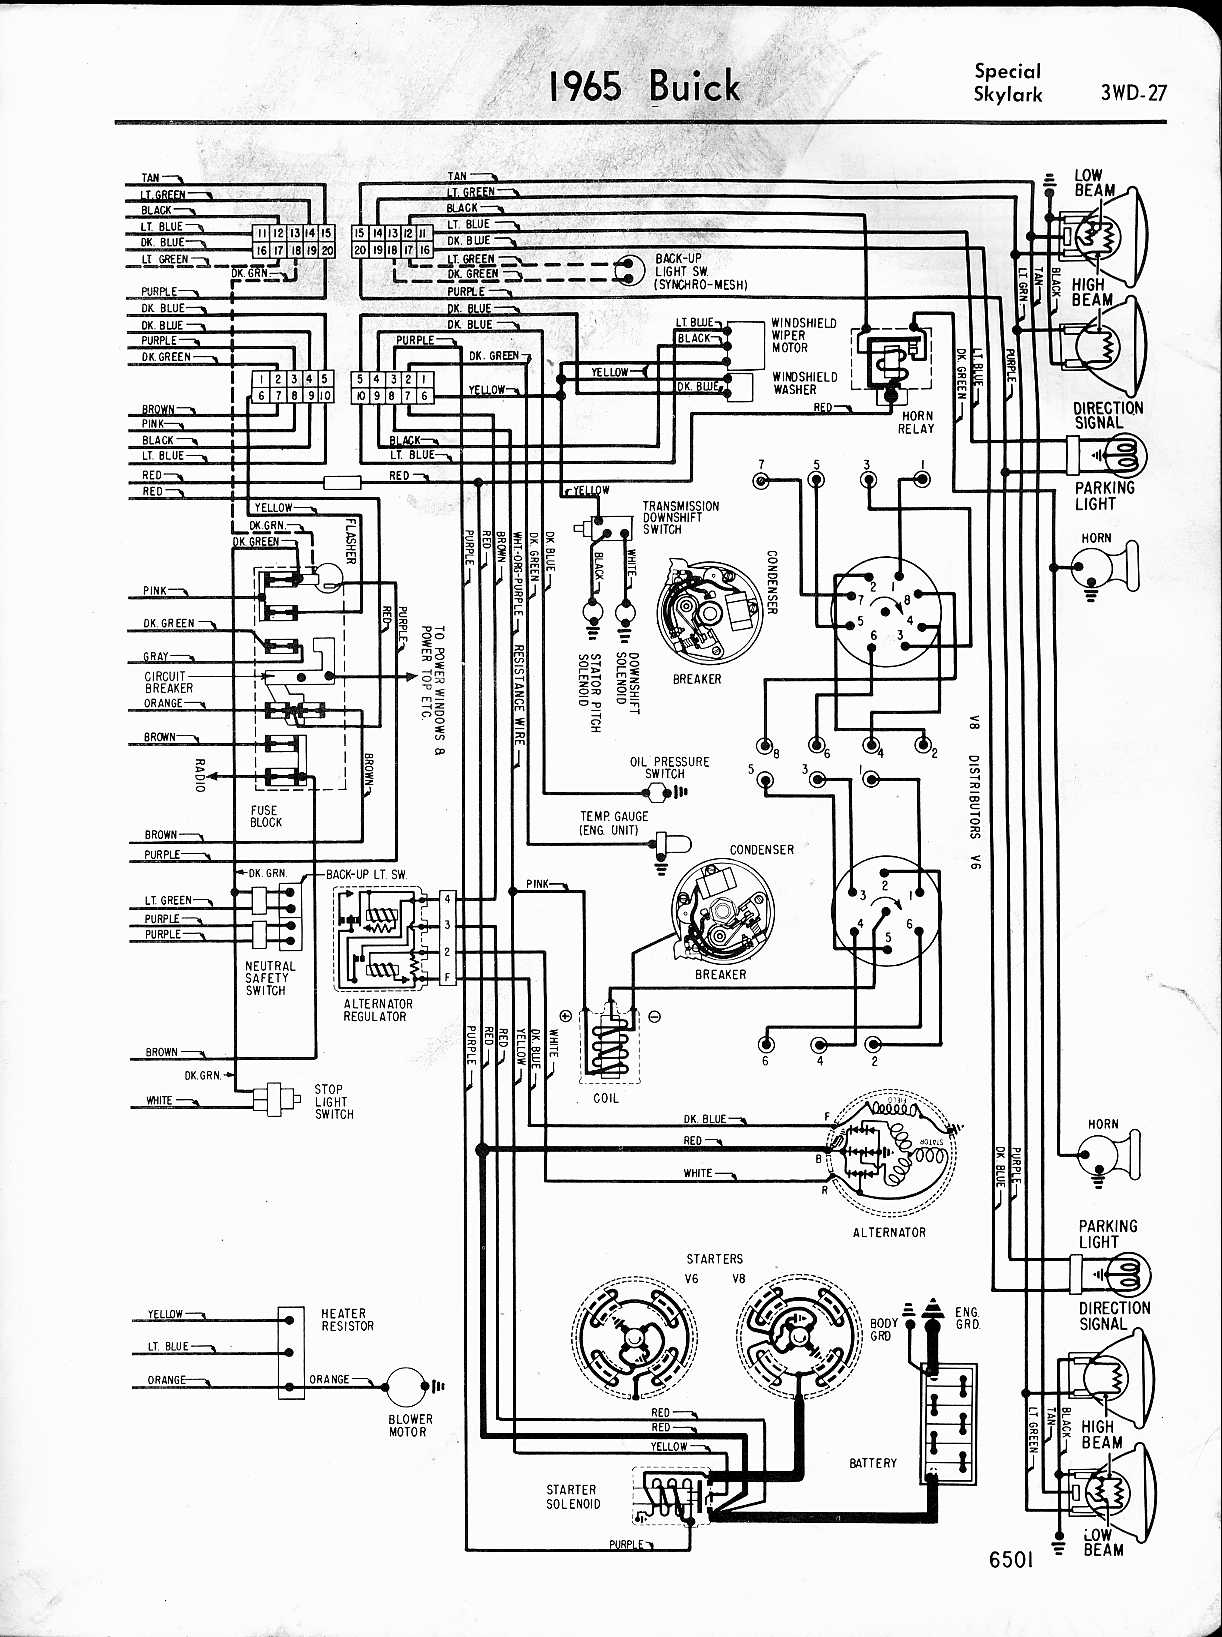 1964 dodge dart wiring diagram wiring library 1968 jeep cj5 wiring diagram 1968 jeep cj5 wiring diagram 1968 jeep cj5 wiring diagram 1968 jeep cj5 wiring diagram